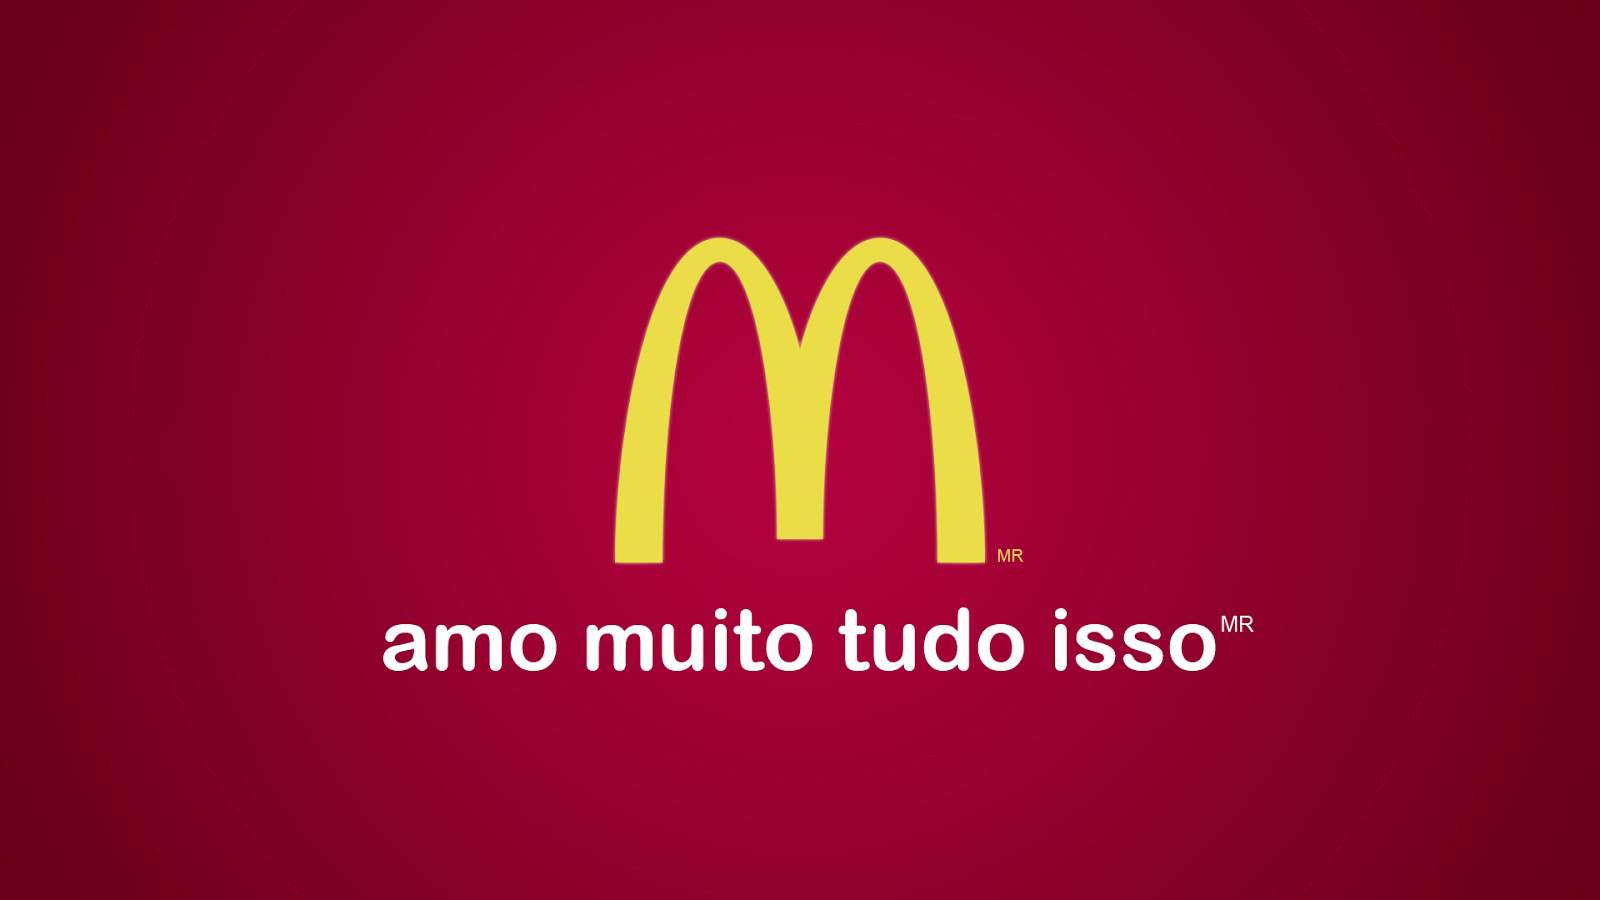 McDonald's global slogan in Brazil is not a literal translation, and it is a success